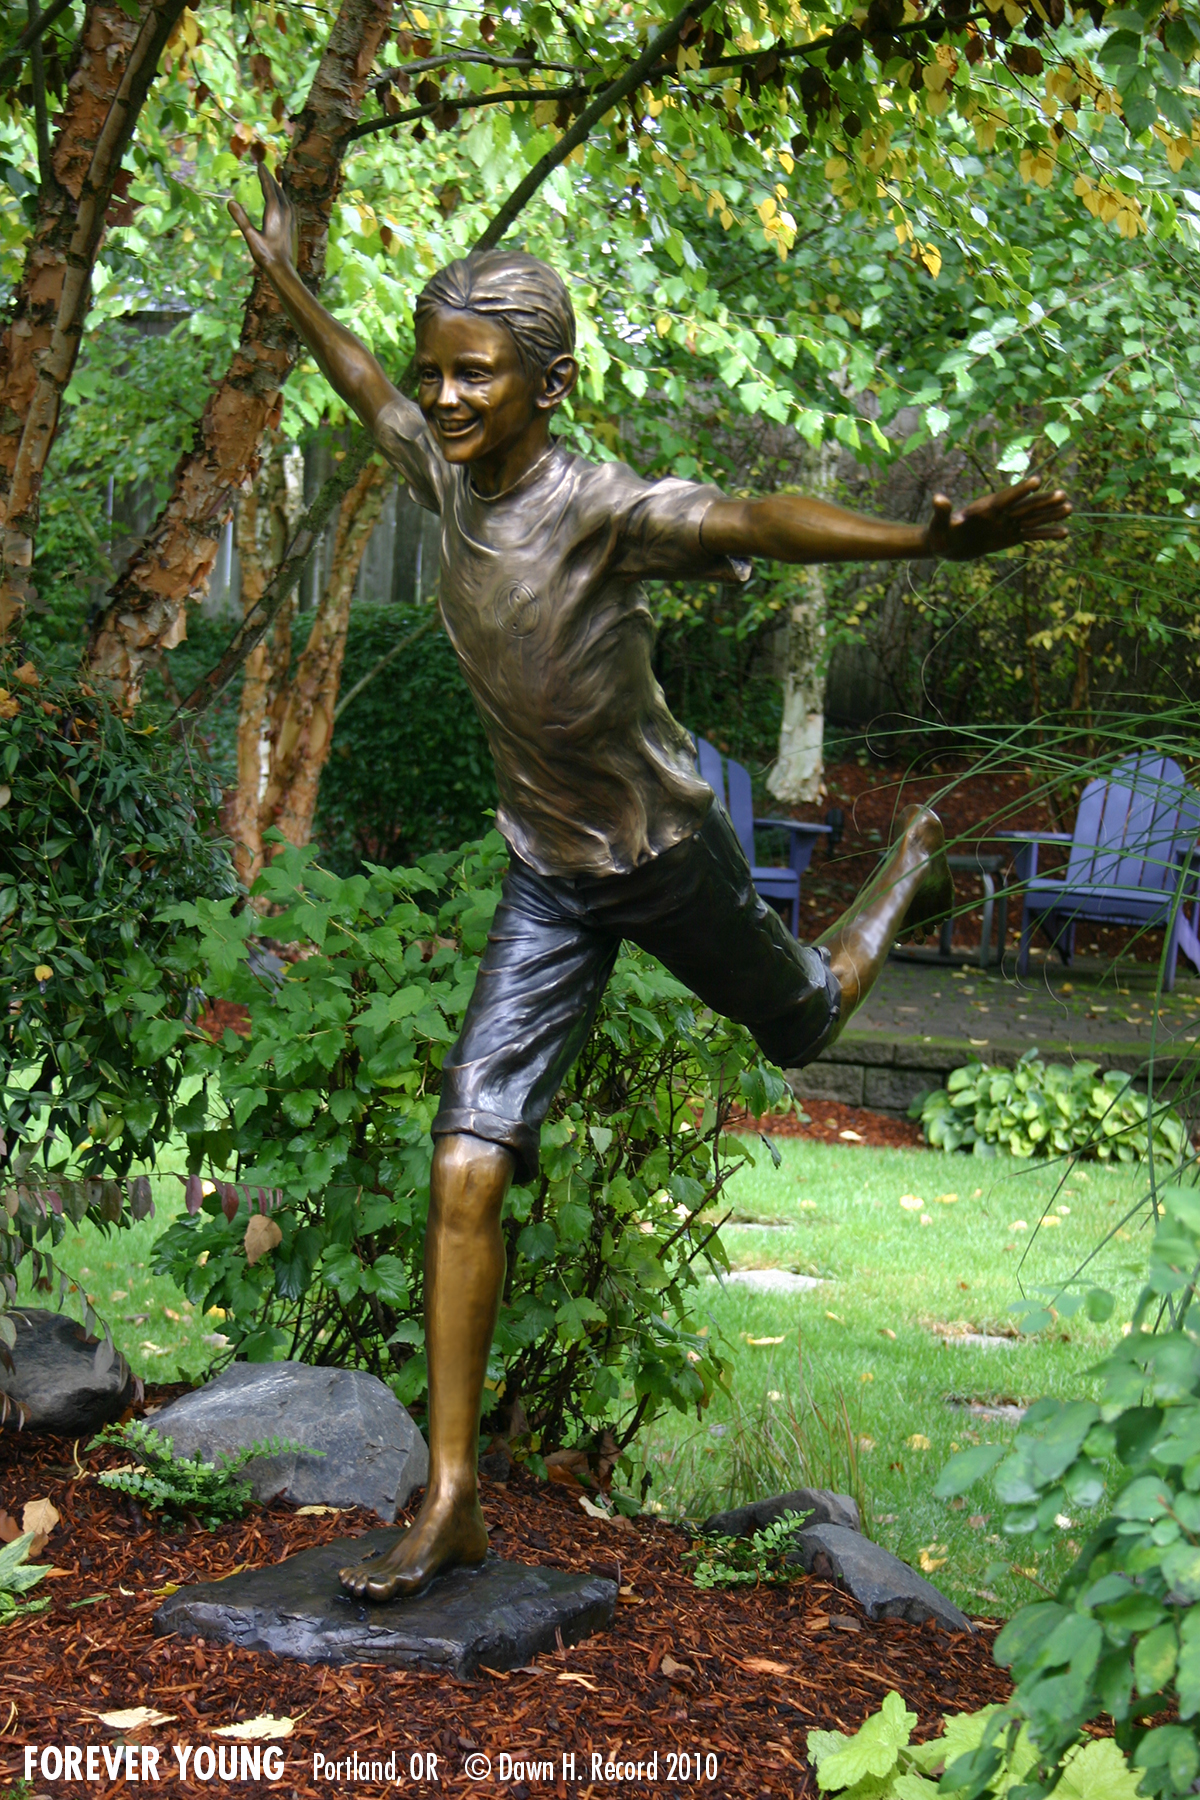 Forever young sculpture of a teen boy, left side